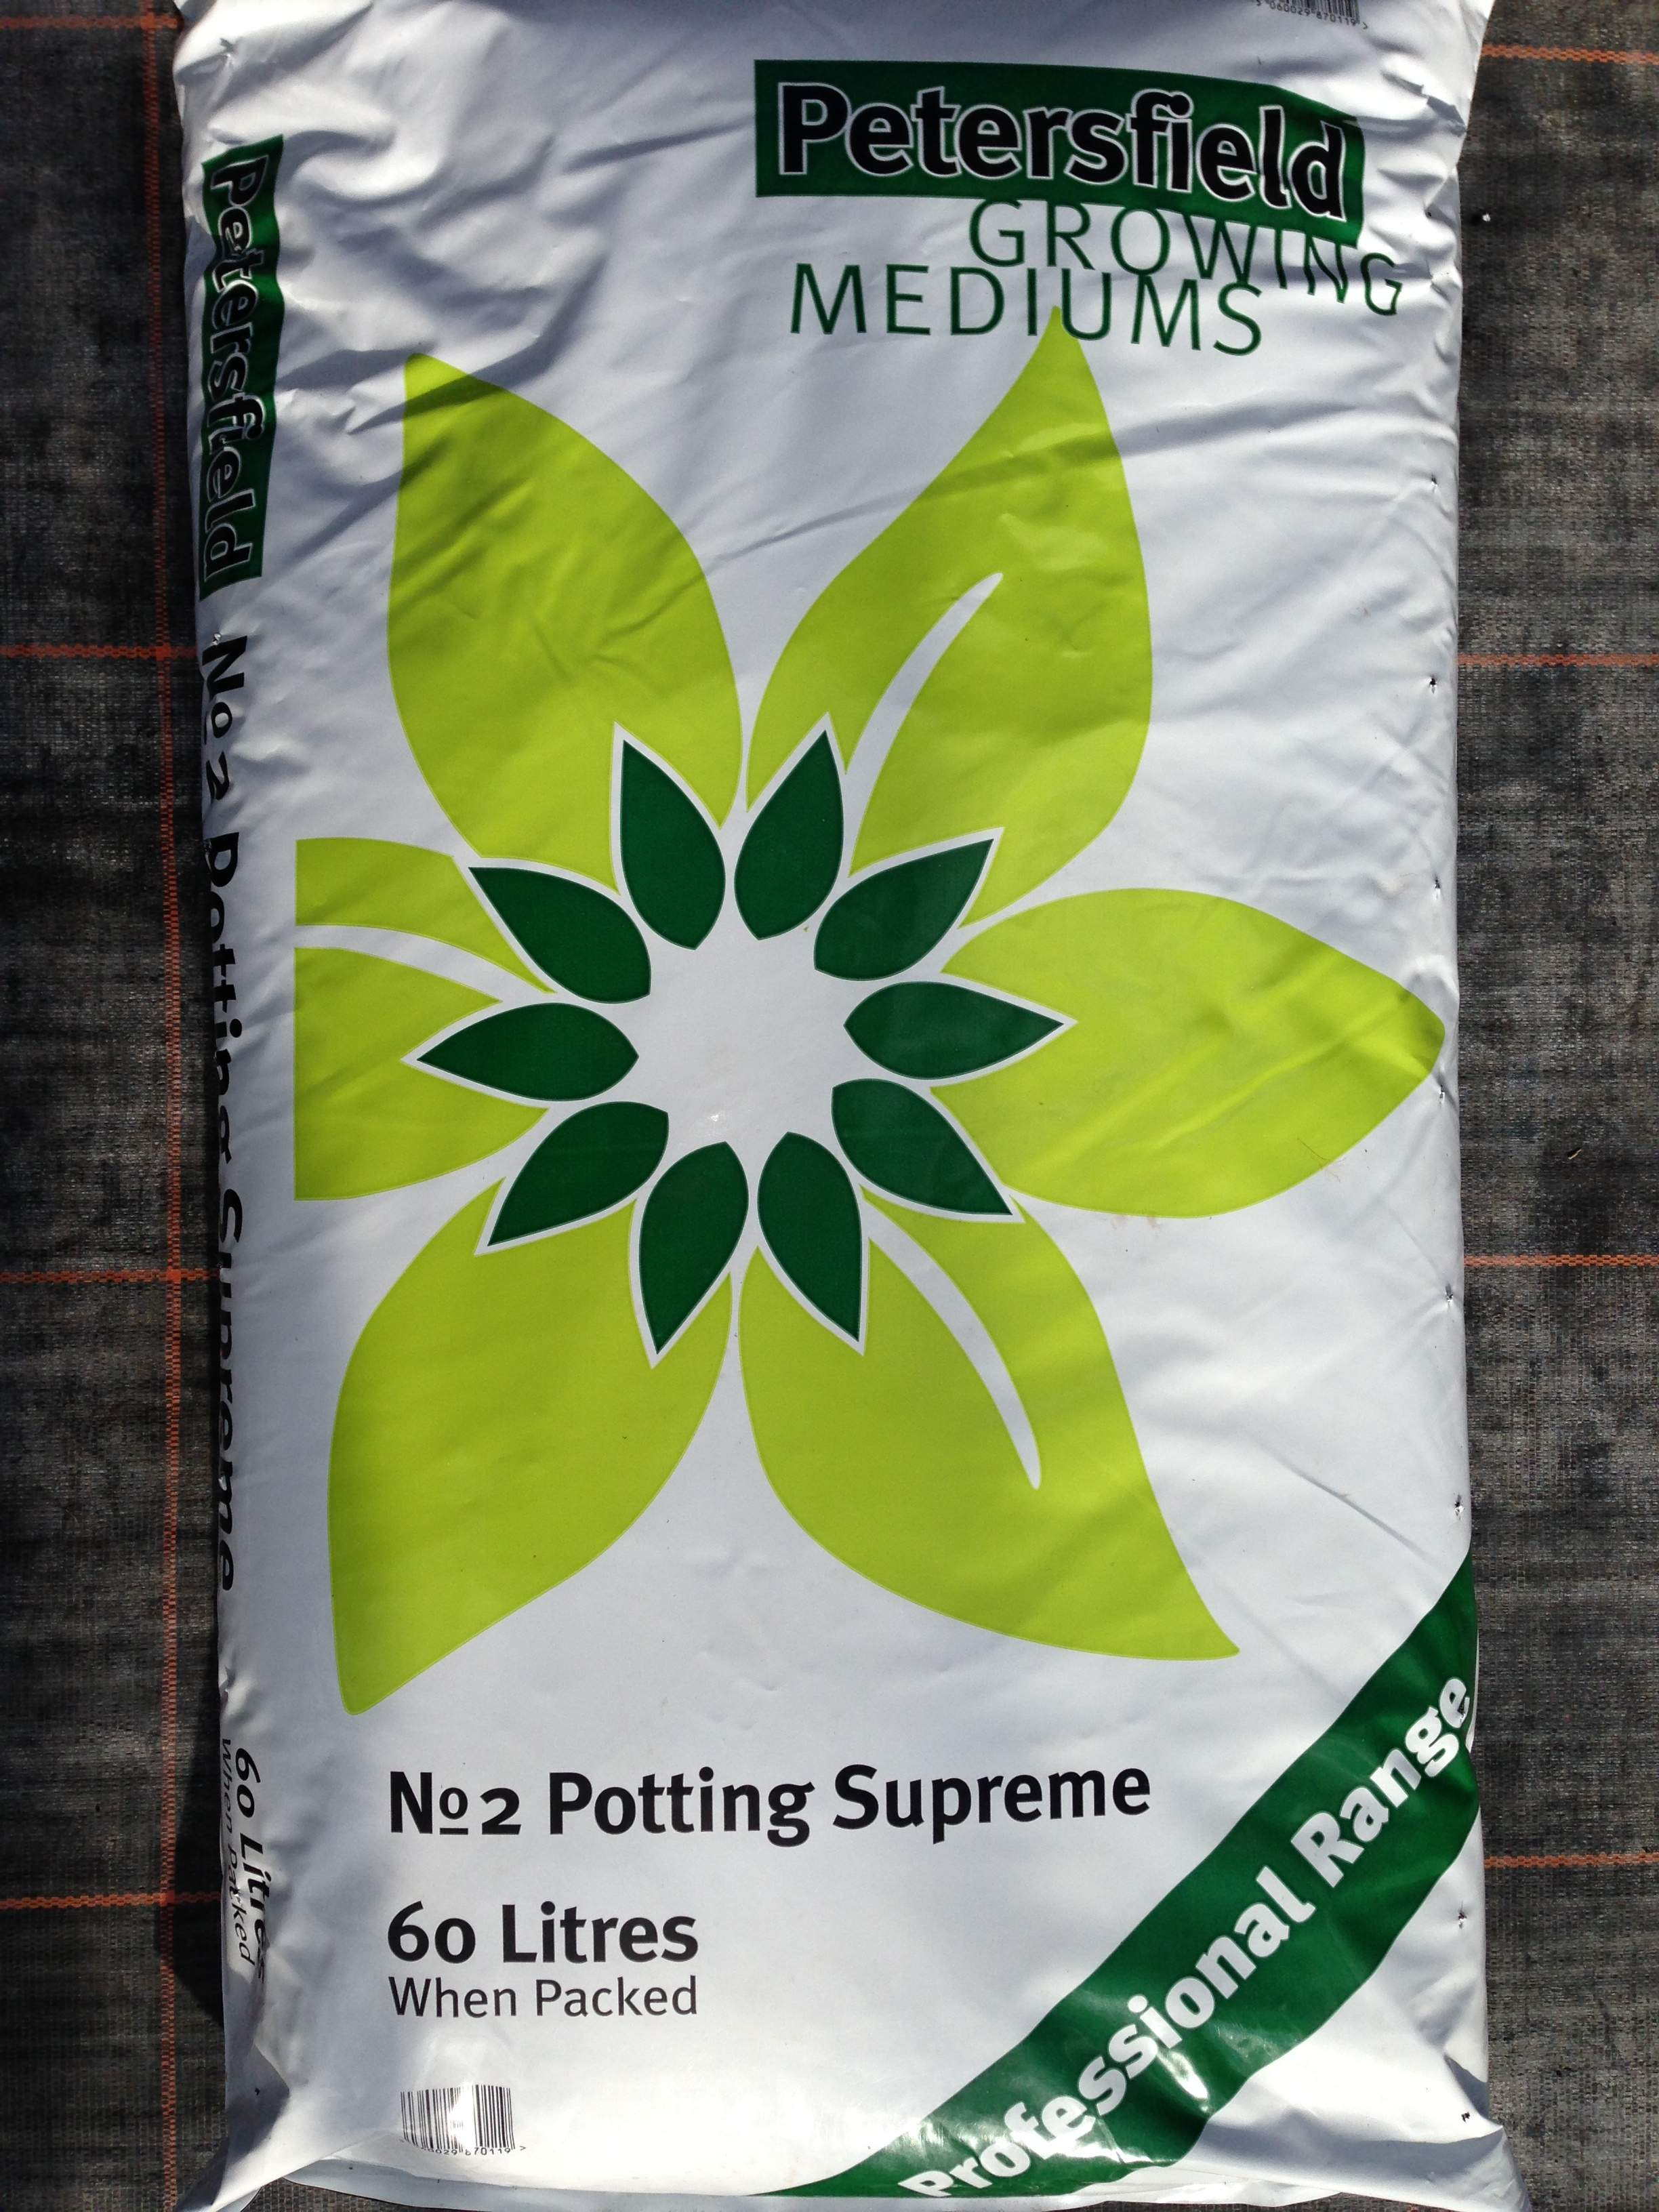 Petersfield Potting Supreme Compost £8.50